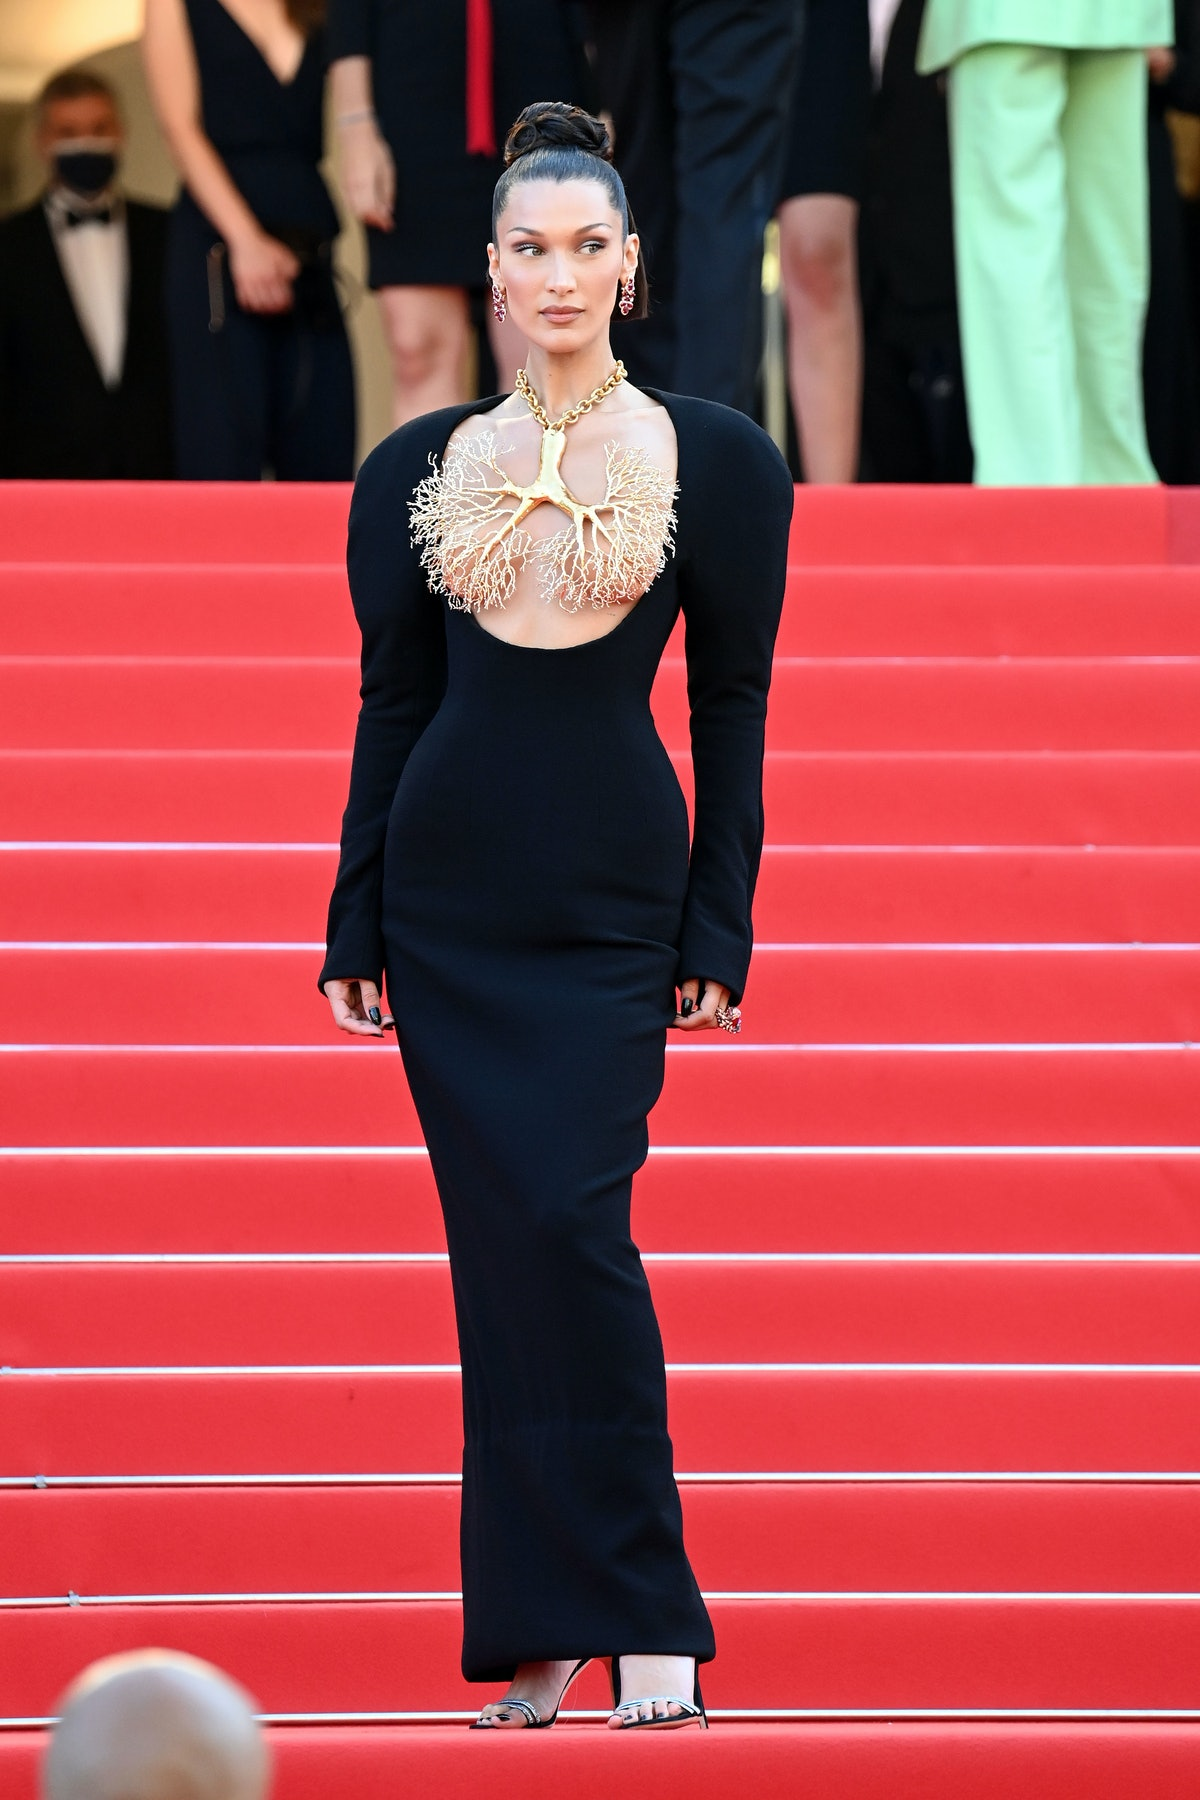 """CANNES, FRANCE - JULY 11: Bella Hadid attends the """"Tre Piani (Three Floors)"""" screening during the 74th annual Cannes Film Festival on July 11, 2021 in Cannes, France. (Photo by Daniele Venturelli/WireImage)"""